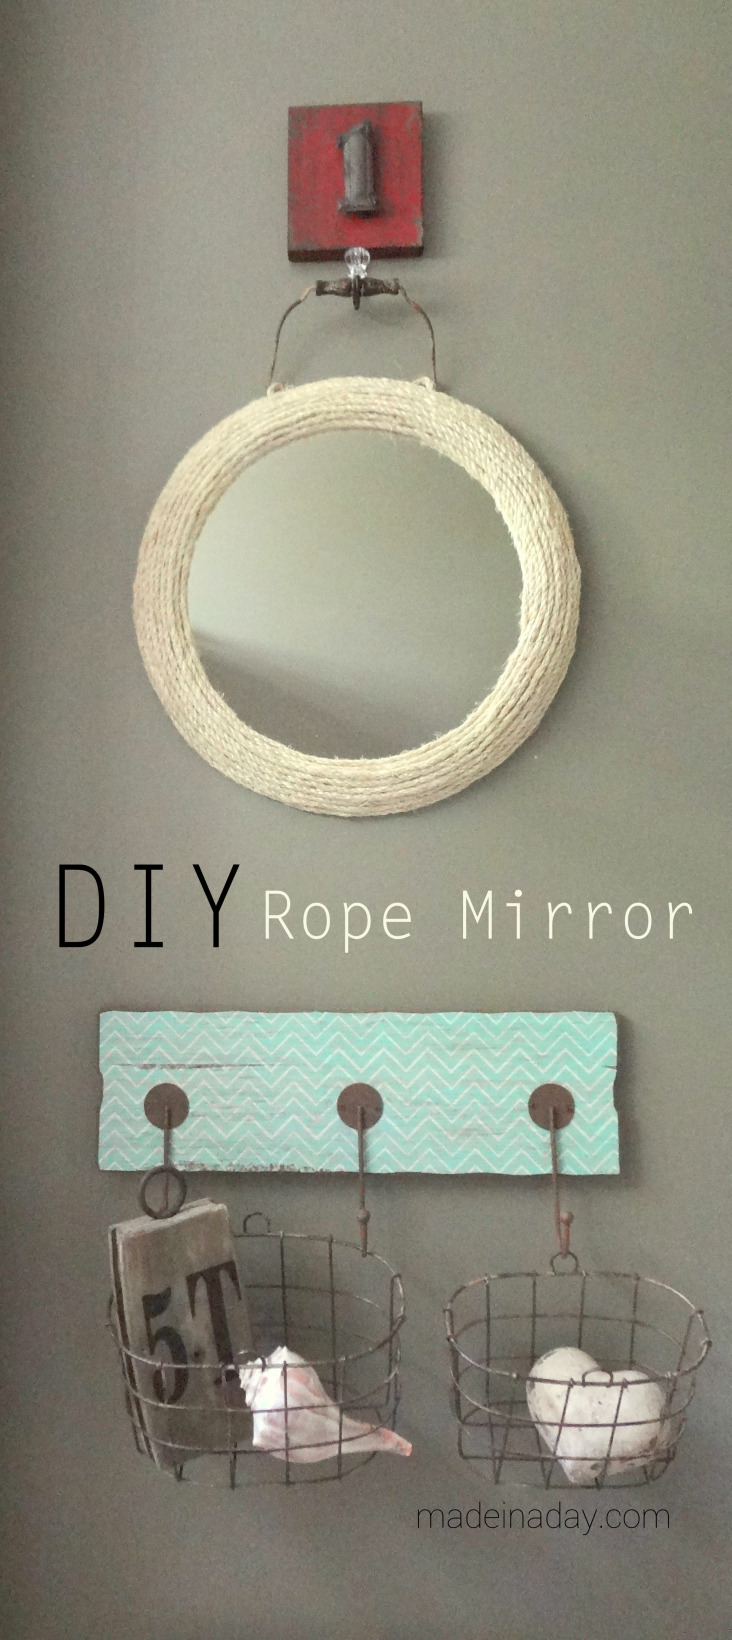 diy-rope-mirror by Made in a Day